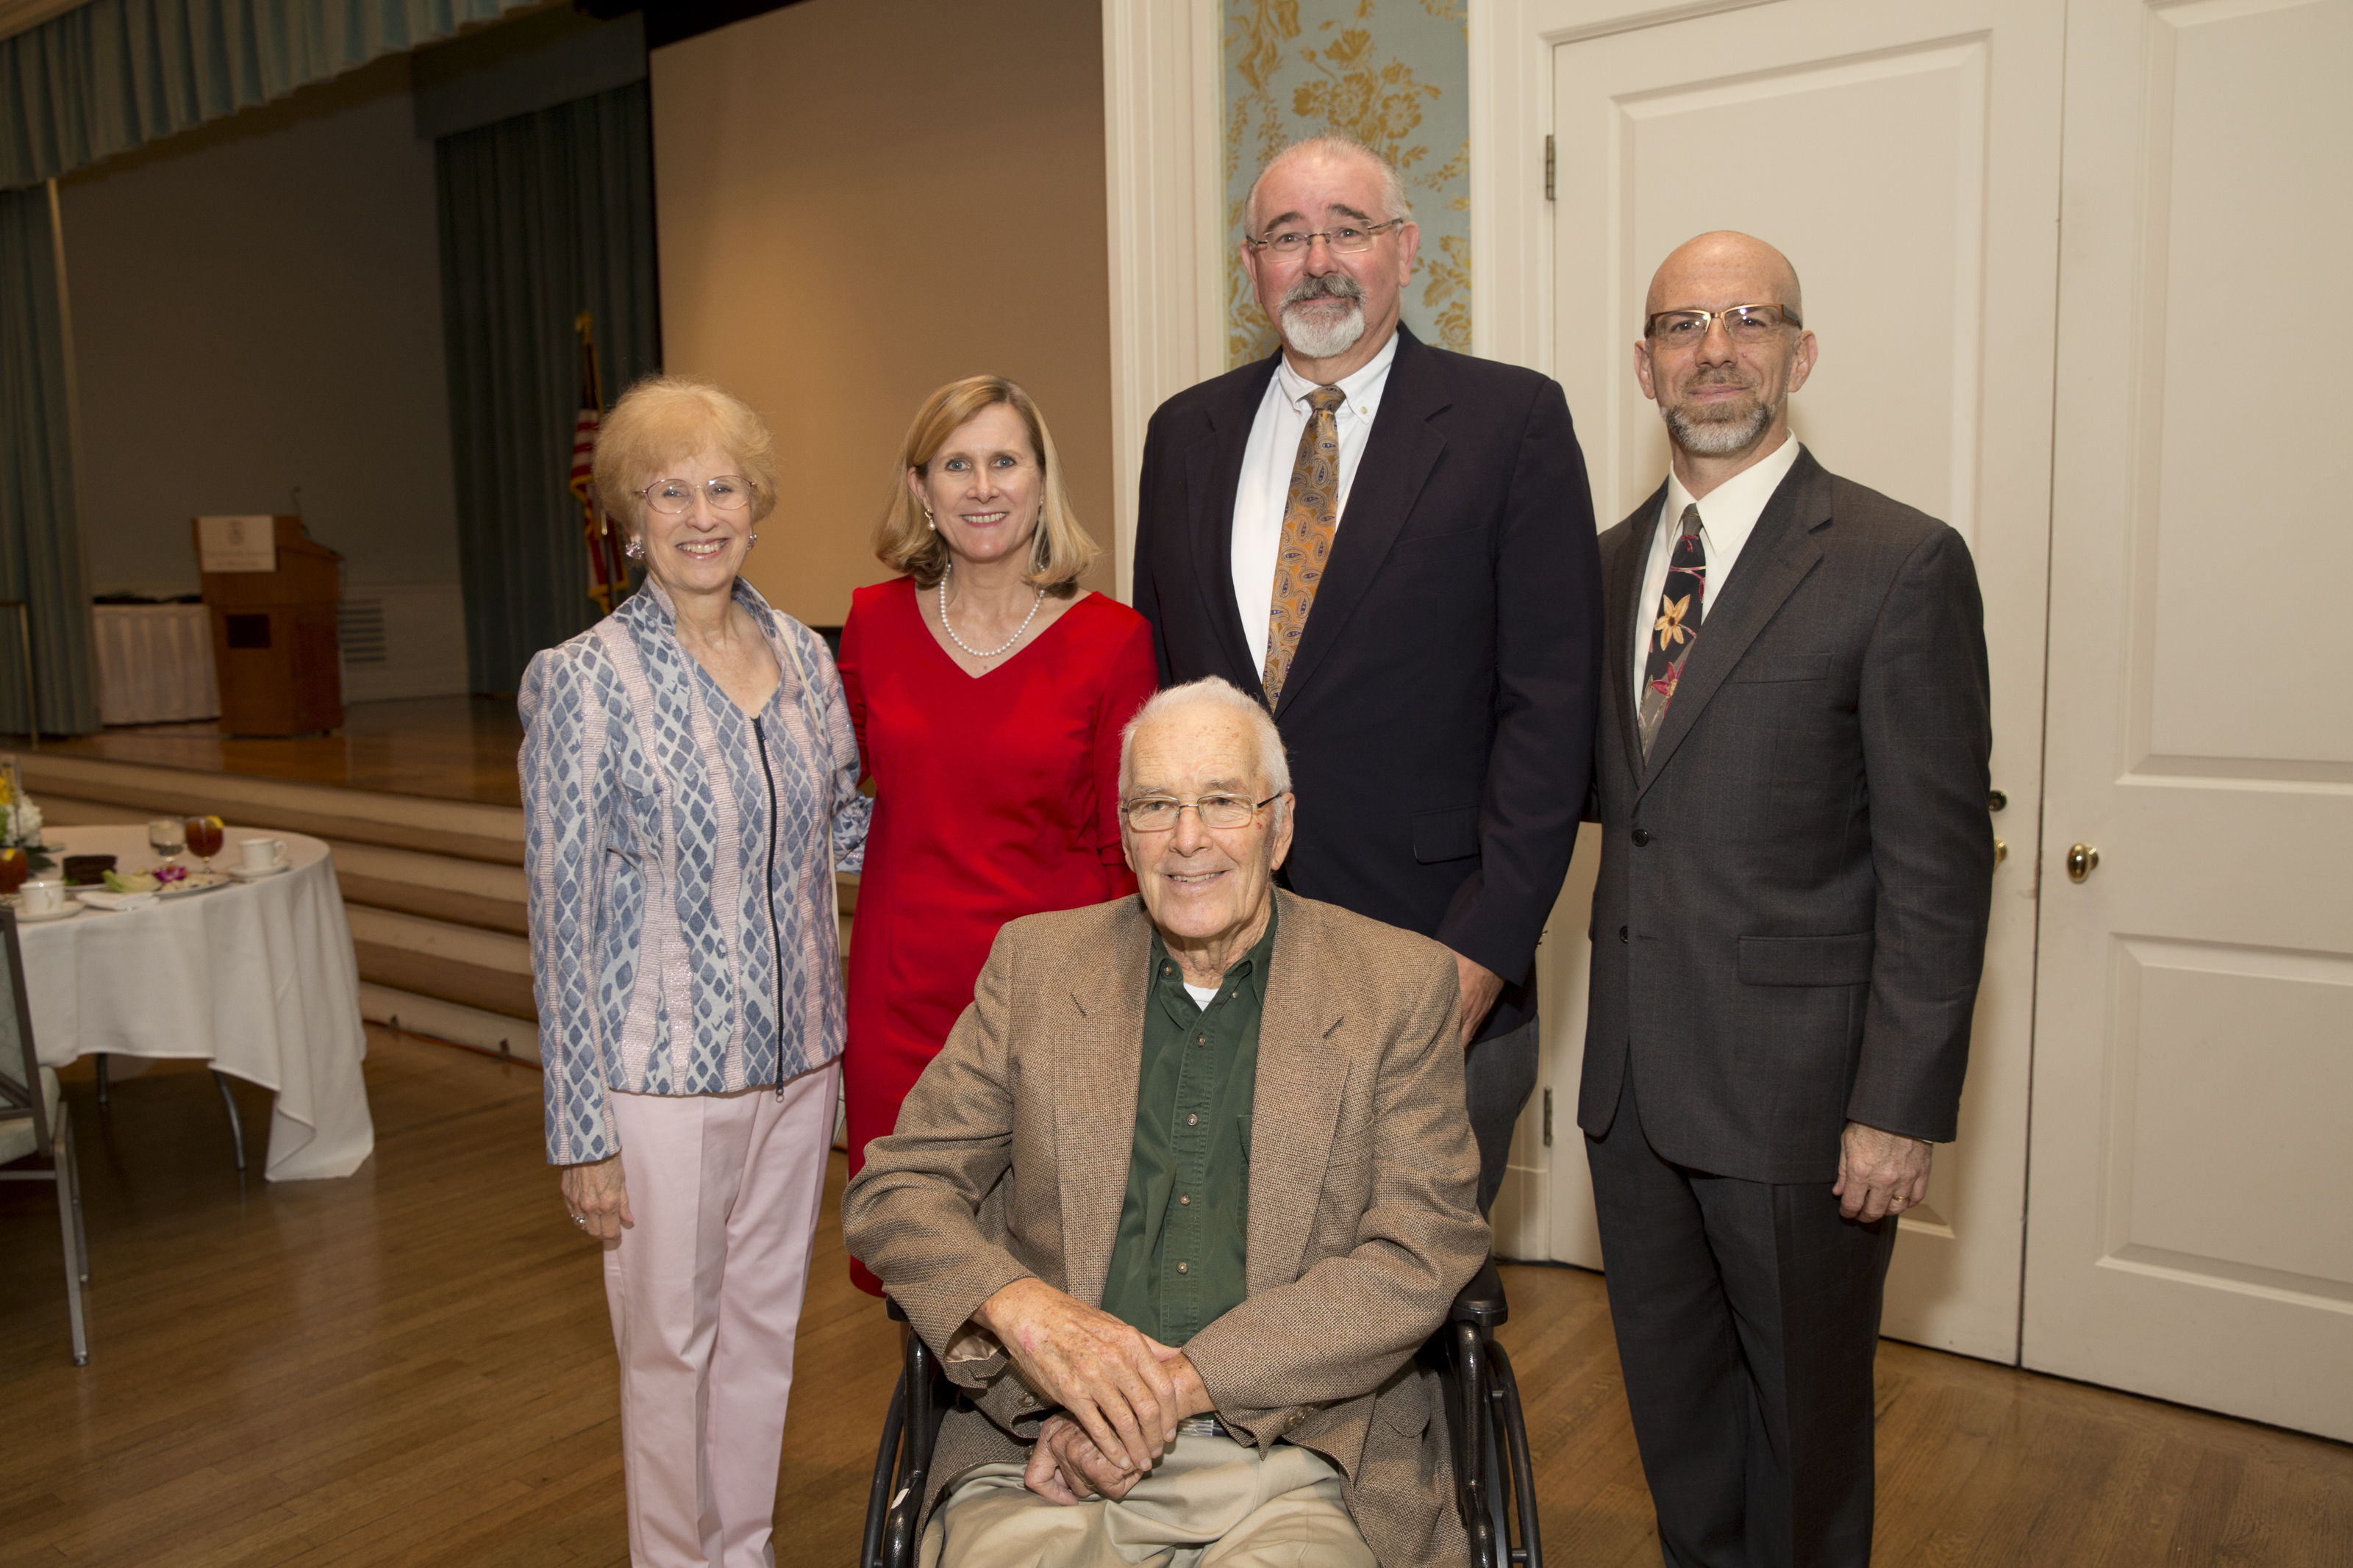 Three prominent Houstonians honored at 2017 Terry Hershey Bayou Stewardship Award luncheon